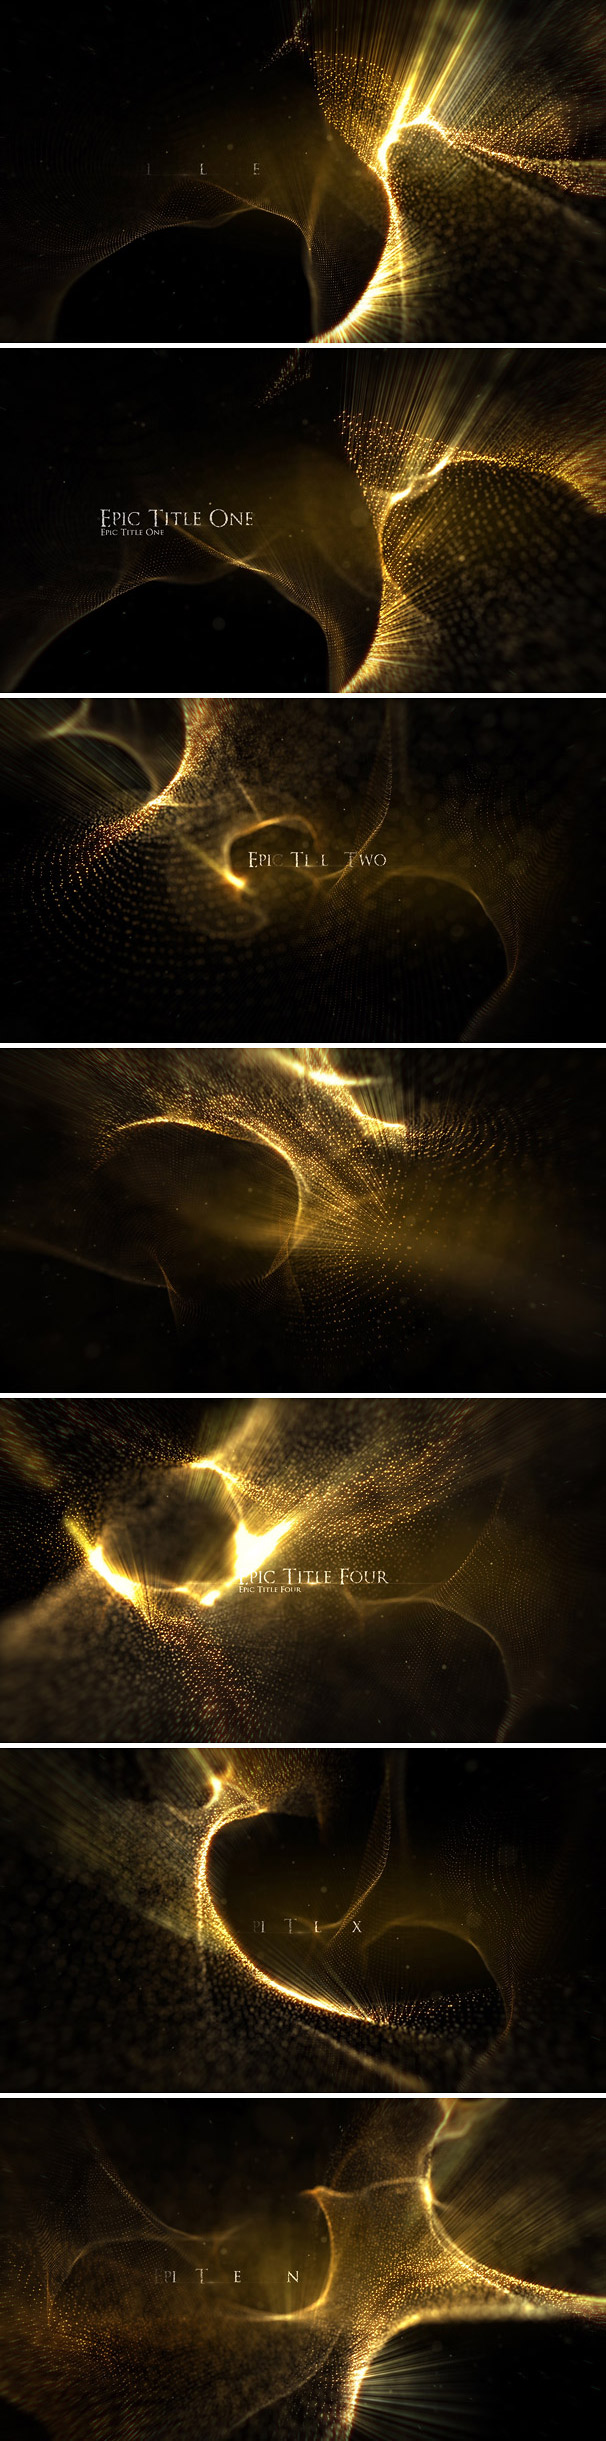 Golden Epic Titles After Effects Template for historical, scientific themes, movie / TV titles